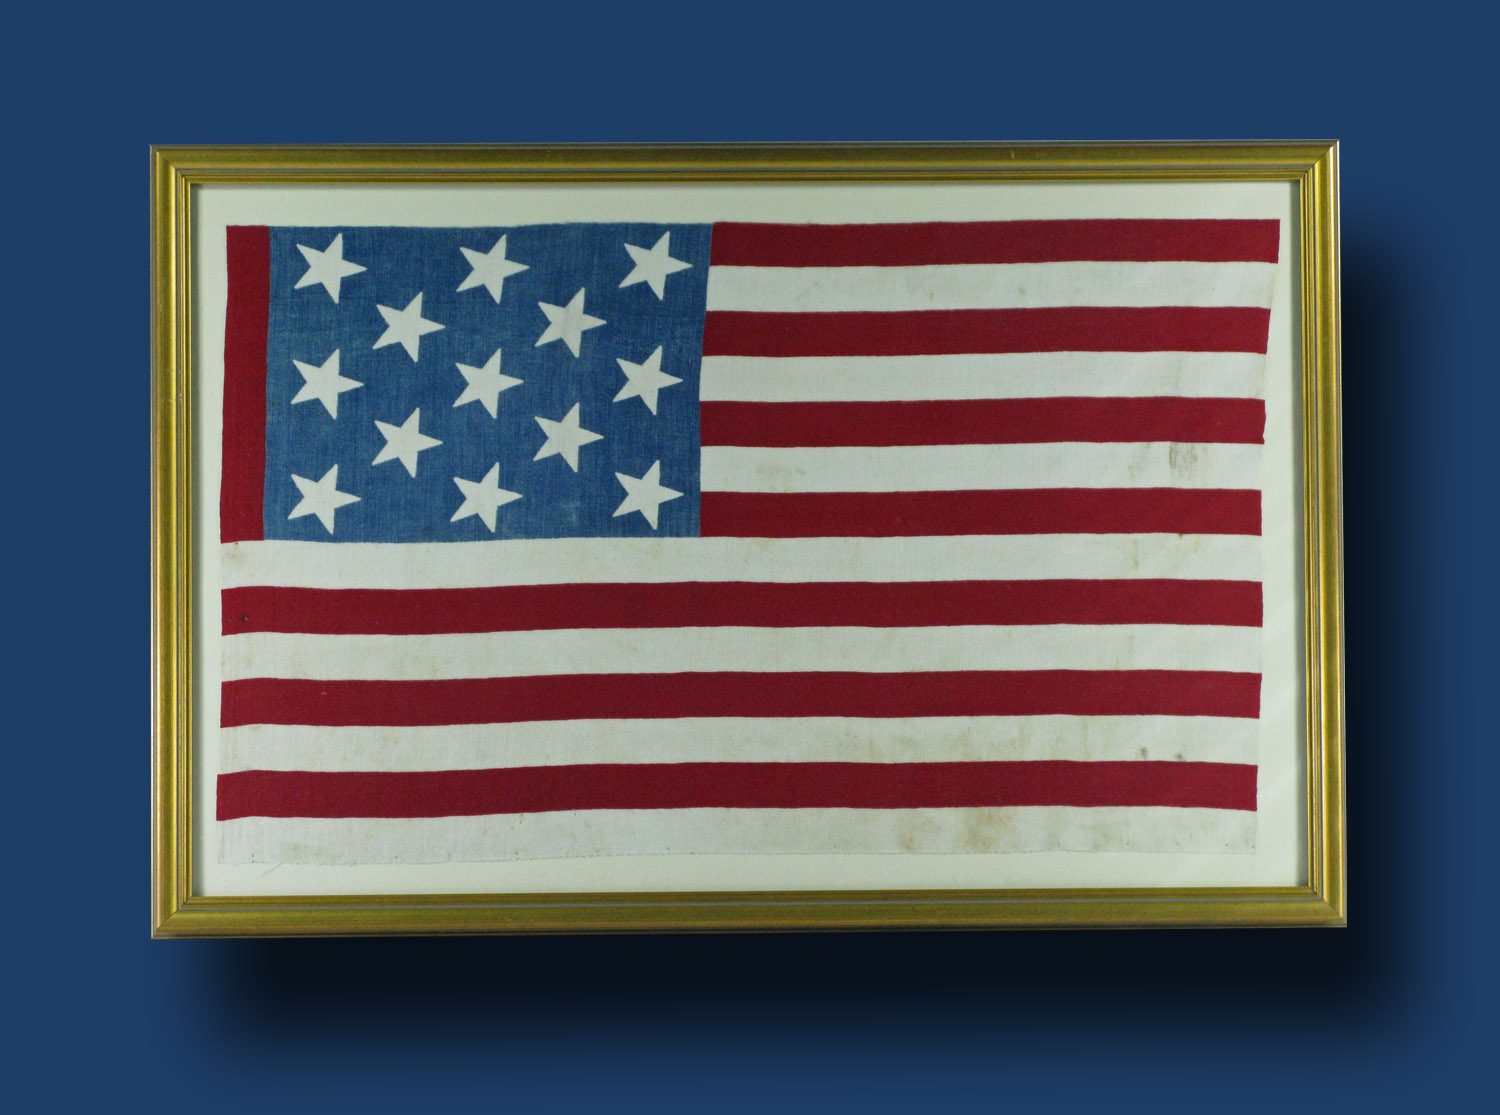 American Flag 51 Stars 13-star american parade flagAmerican Flag 51 Stars